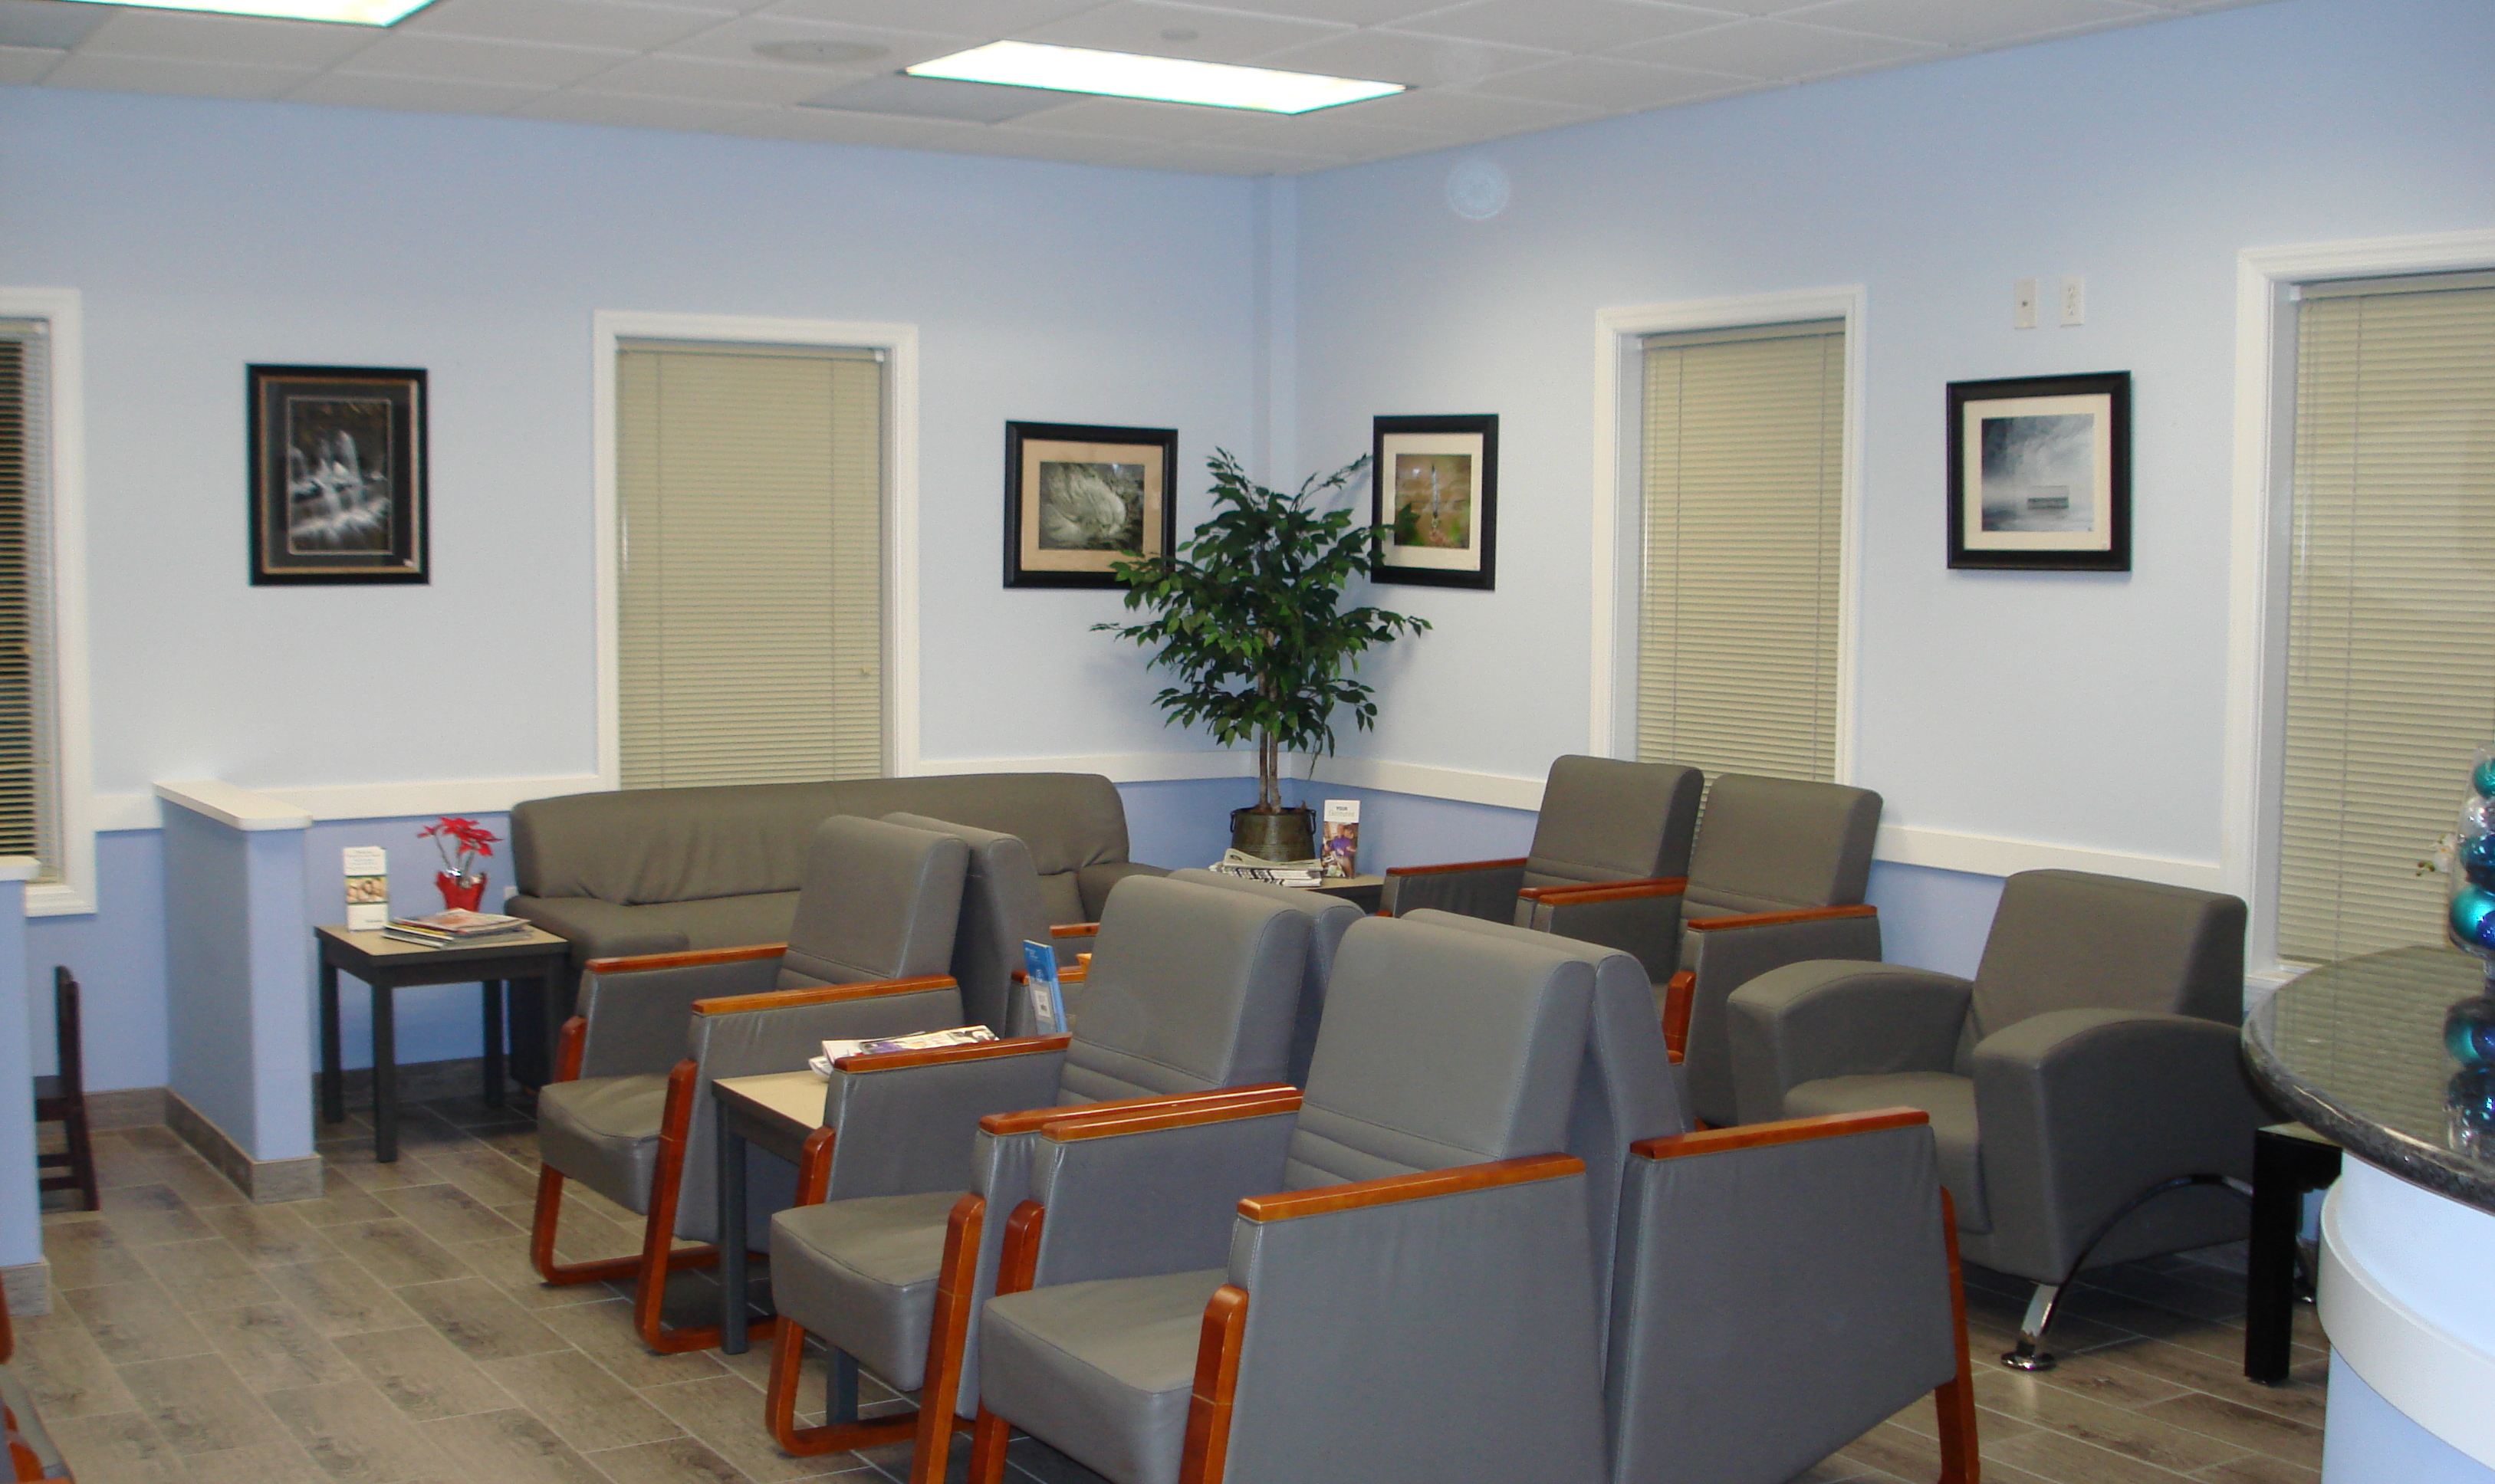 General Dentistry Waiting Room